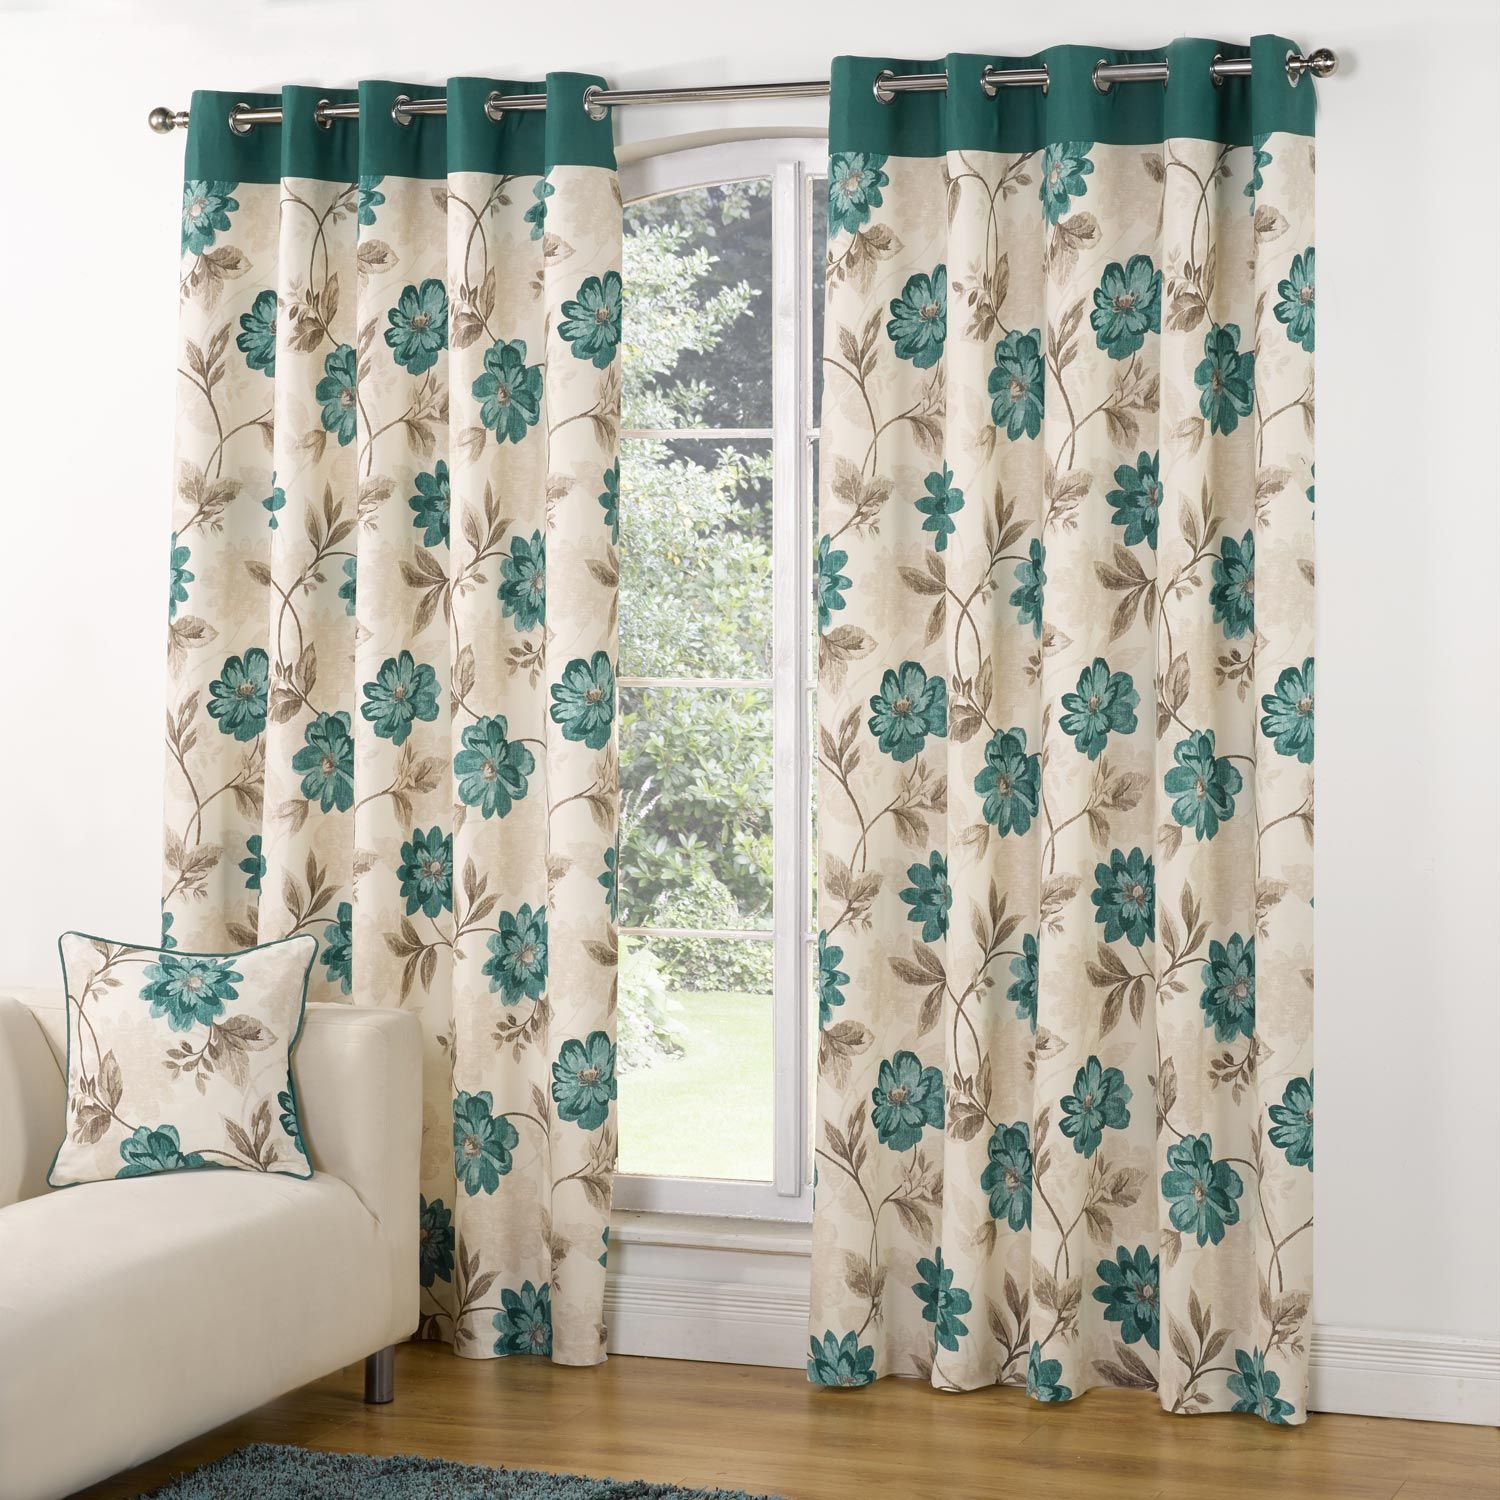 Modern casa floral trail print lined eyelet curtains teal teal kitchen curtains